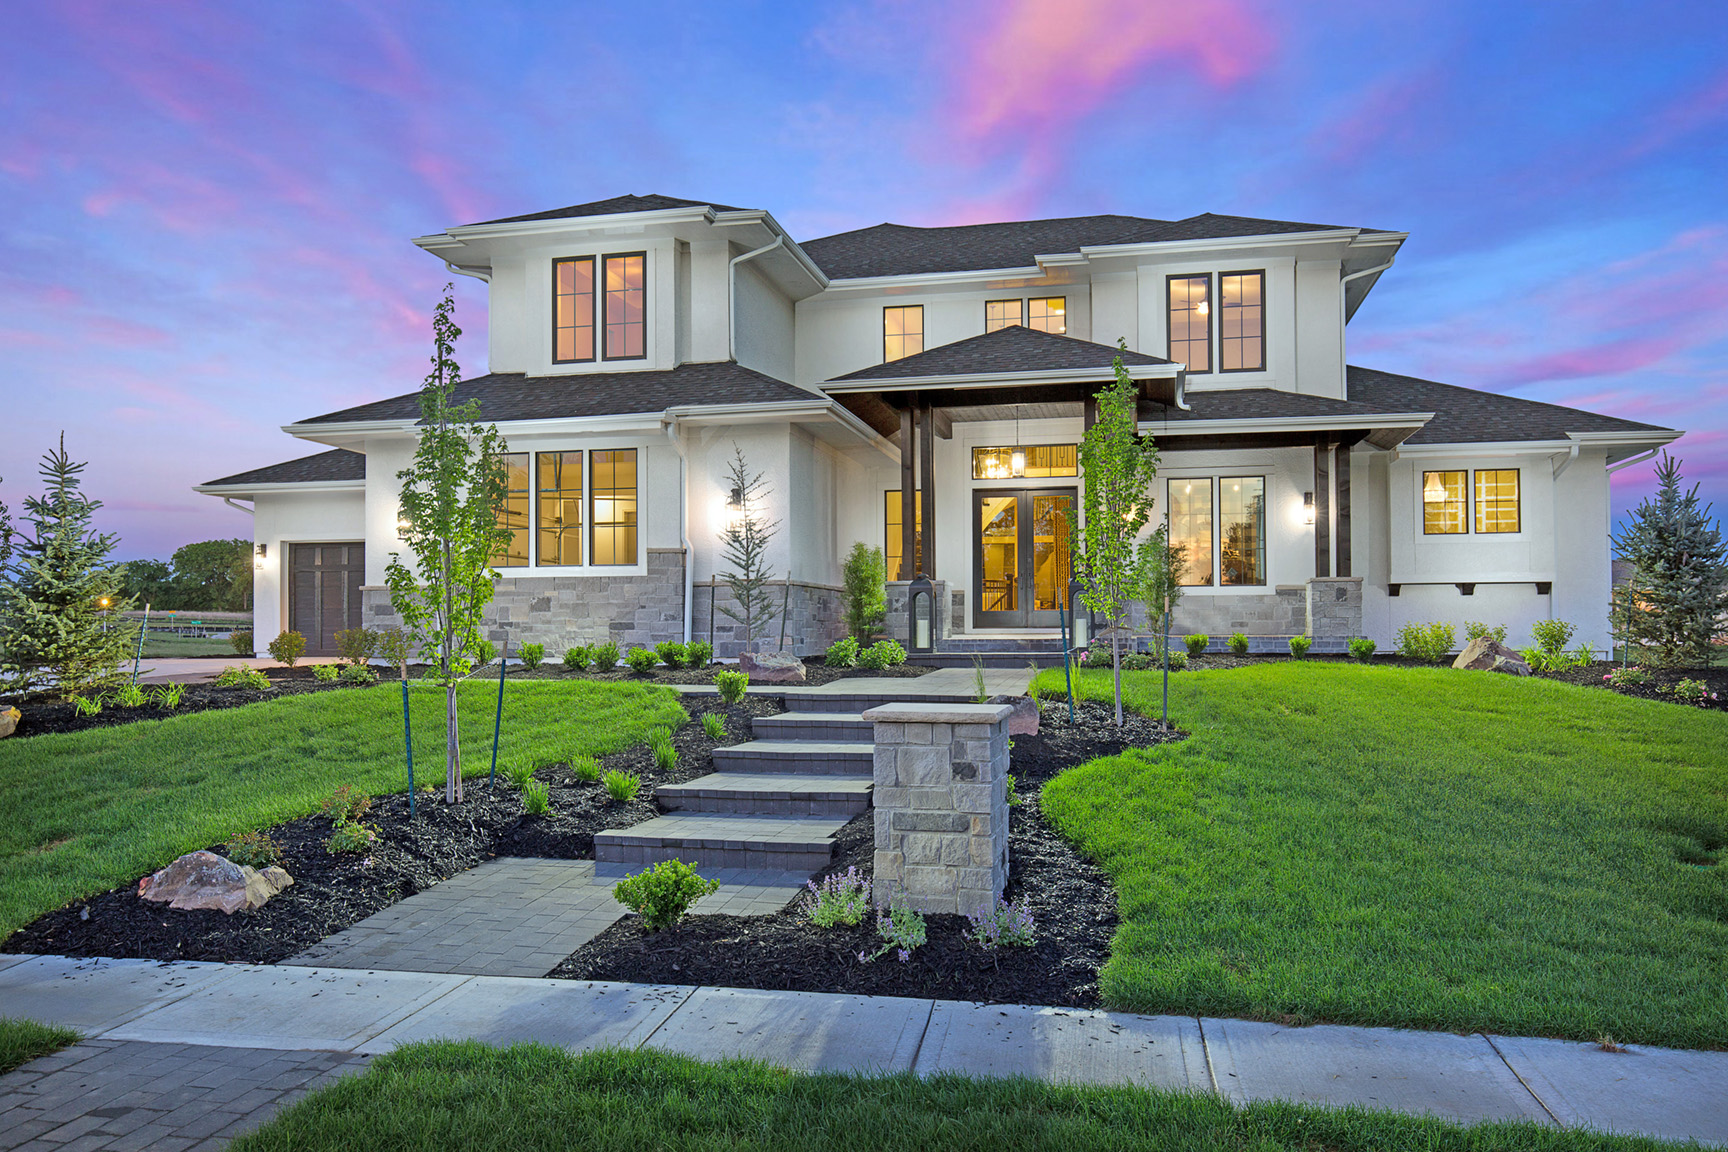 the Kensington by Starr Homes in Sundance Ridge's Big Sky